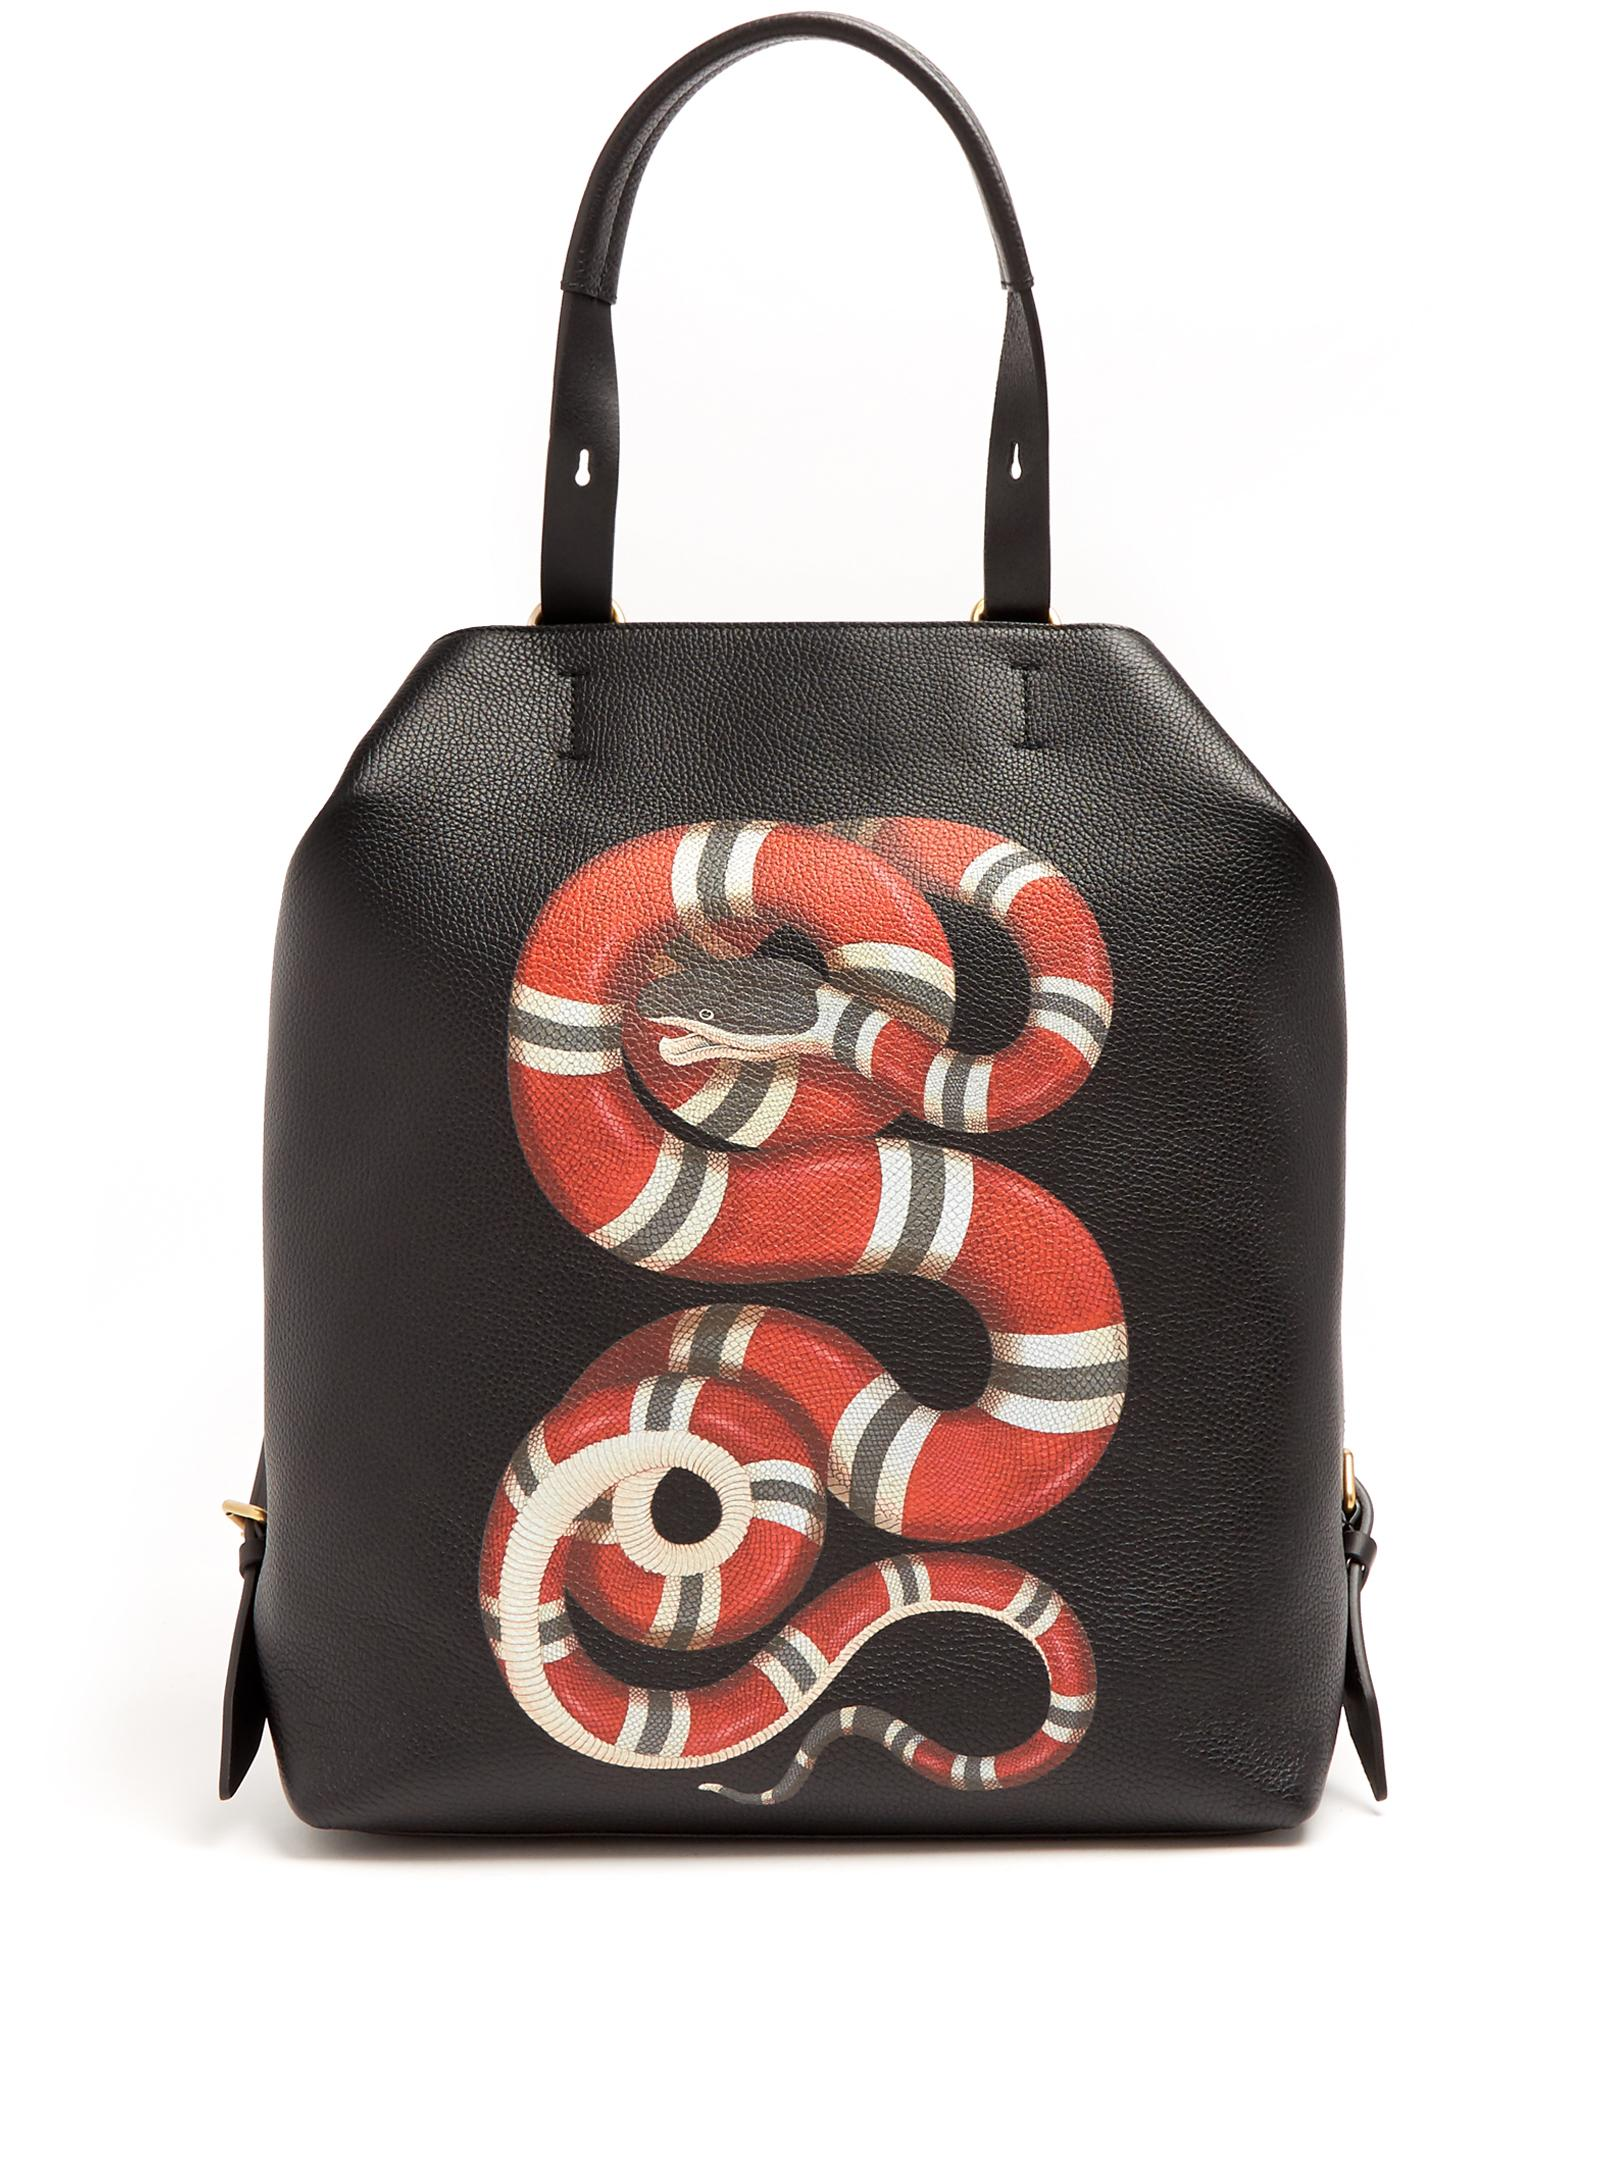 dfa55d95a672 Gucci Snake-print Leather Backpack in Black for Men - Lyst